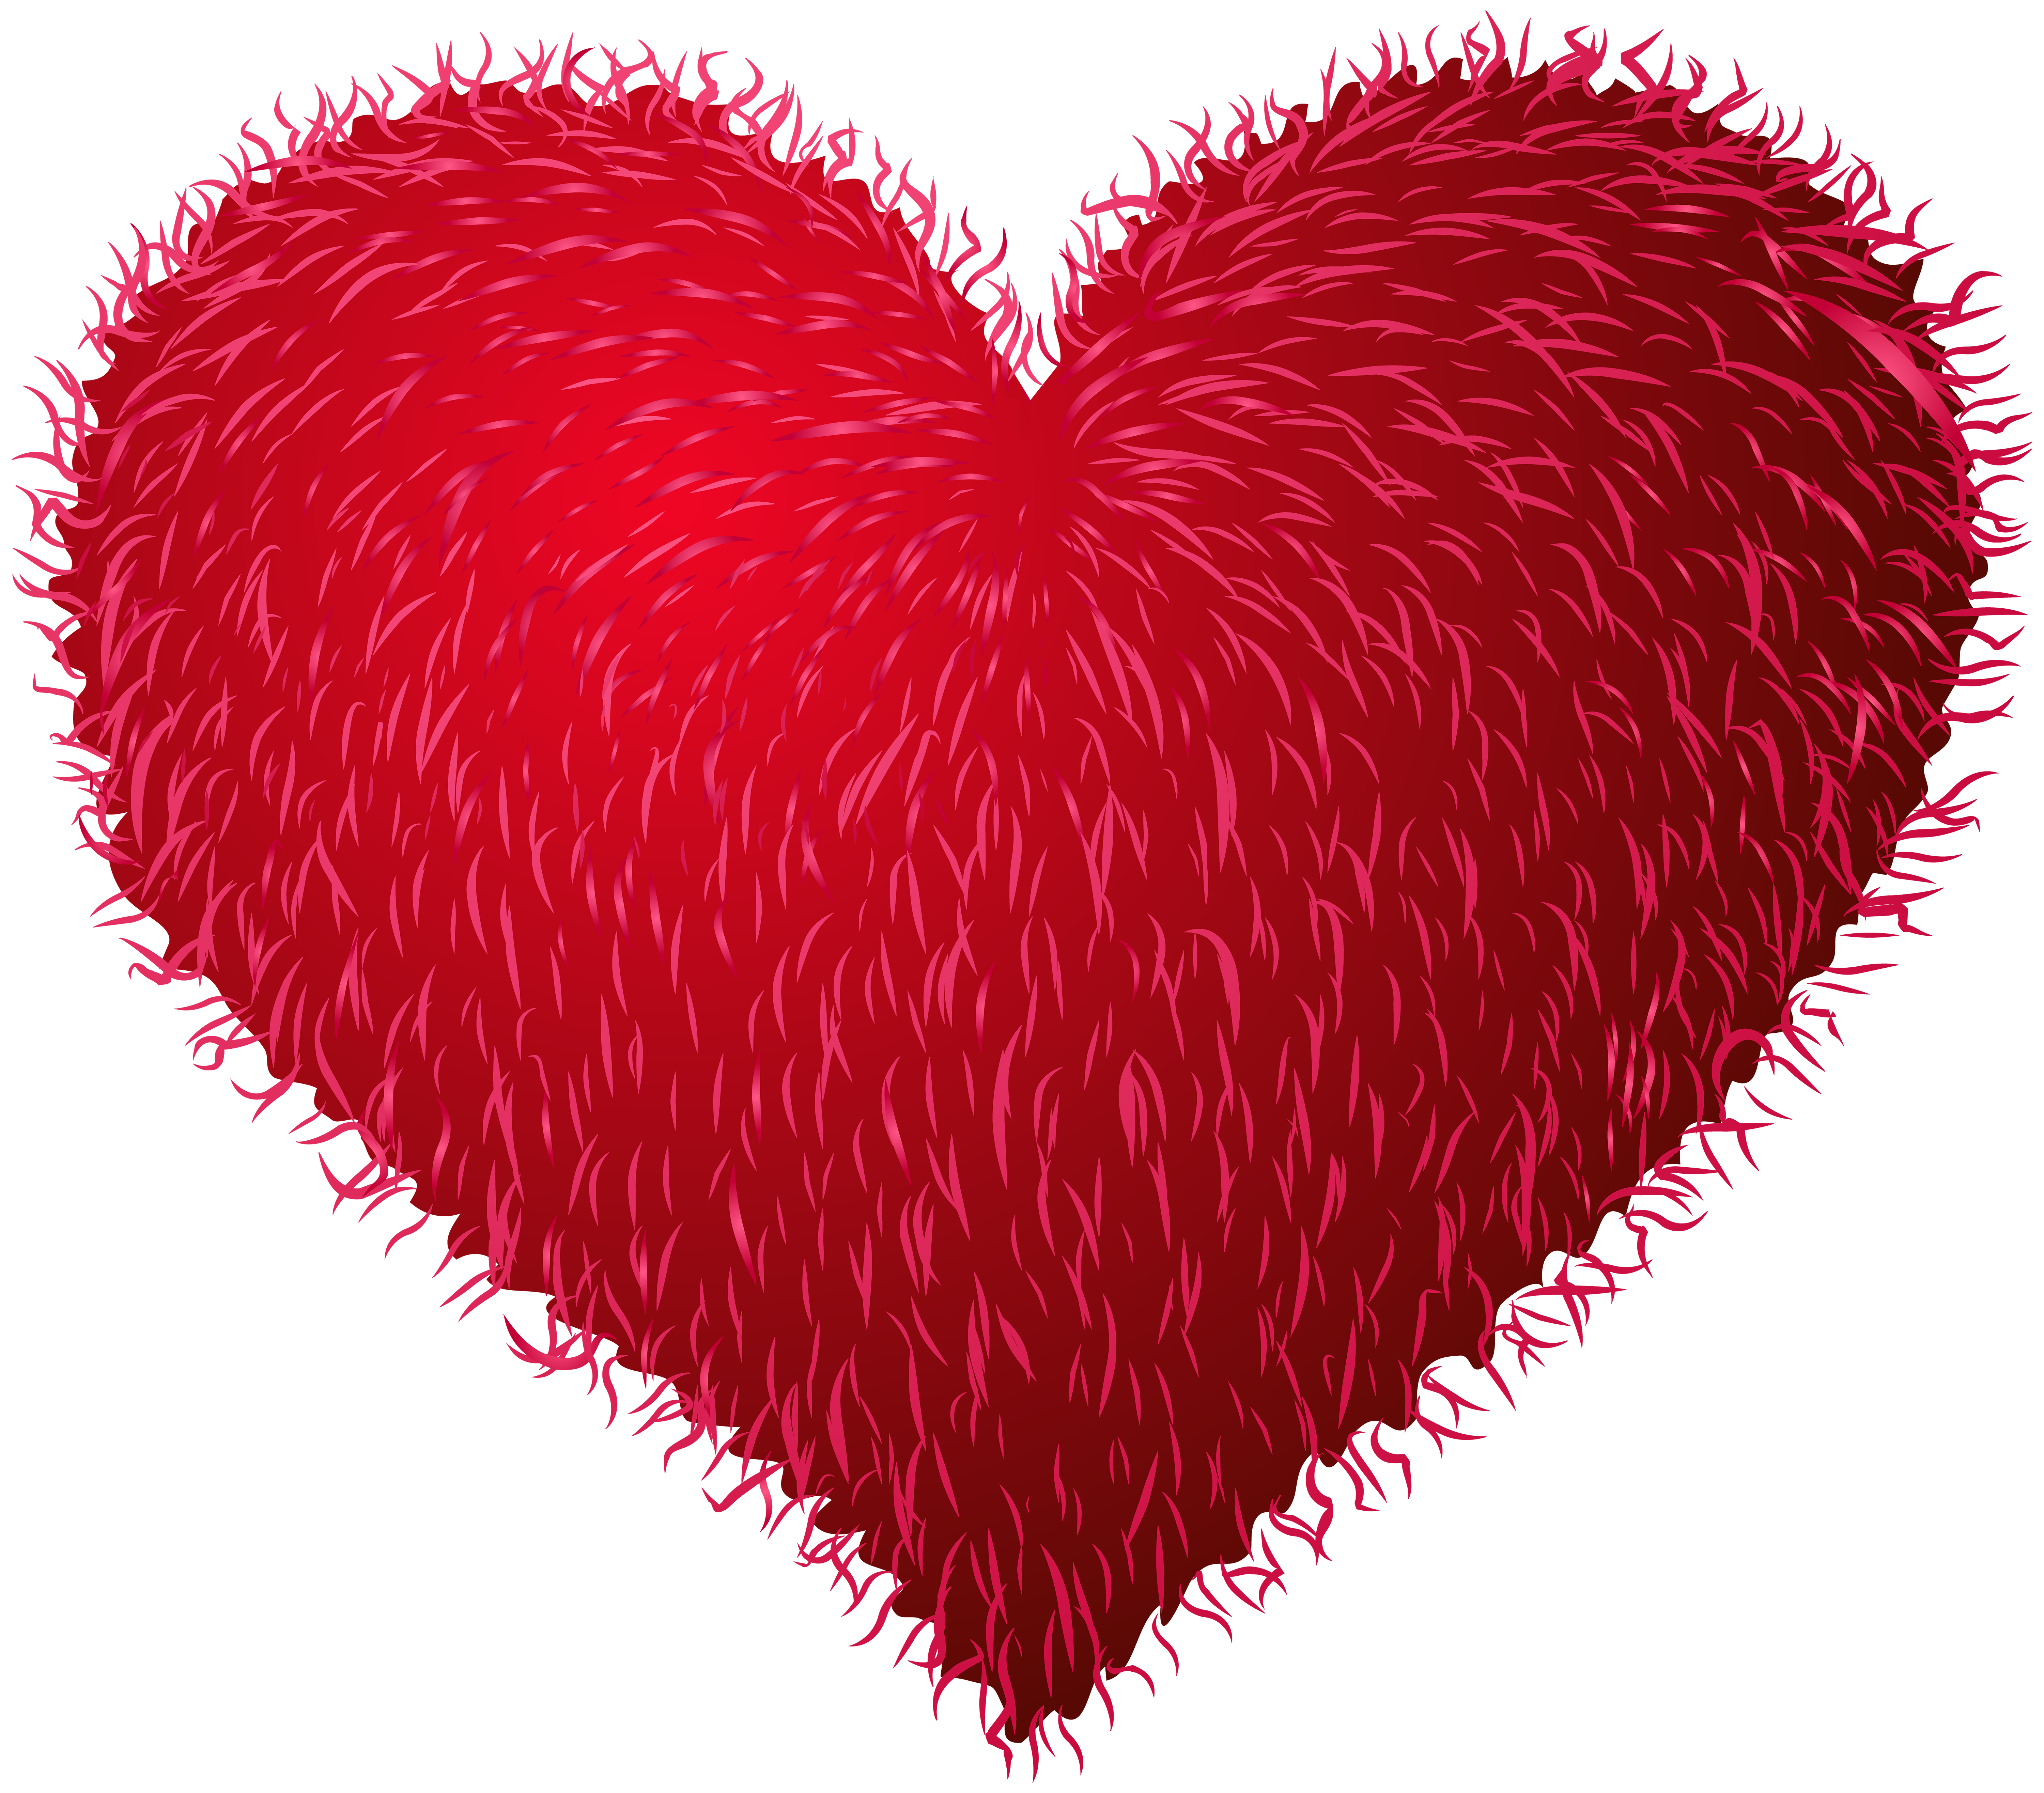 February clipart similar. Download heart valentines love